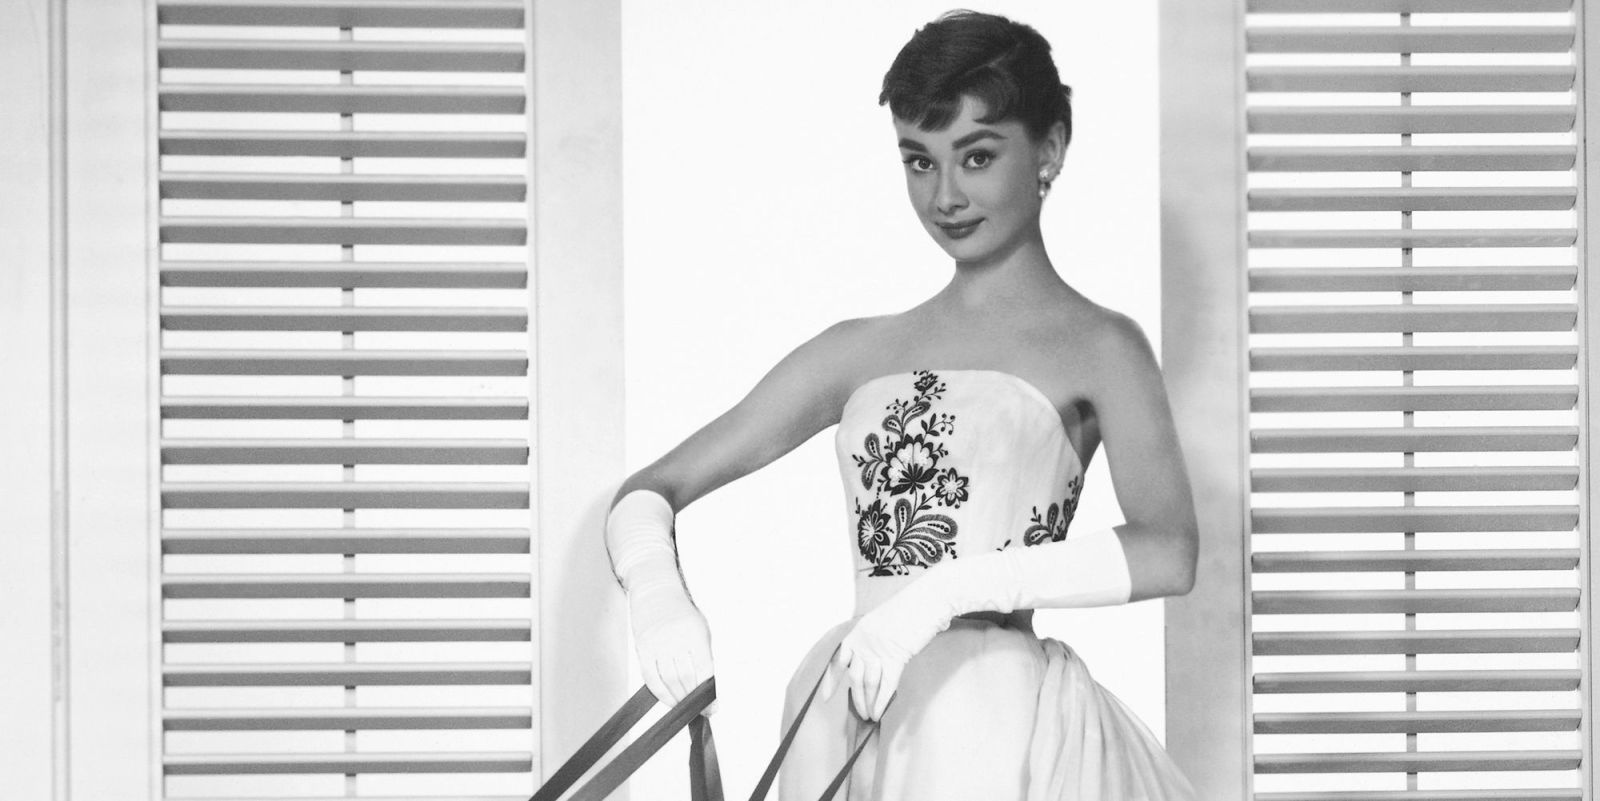 Audrey Hepburn And Hubert De Givenchy's Very Stylish Friendship In Pictures